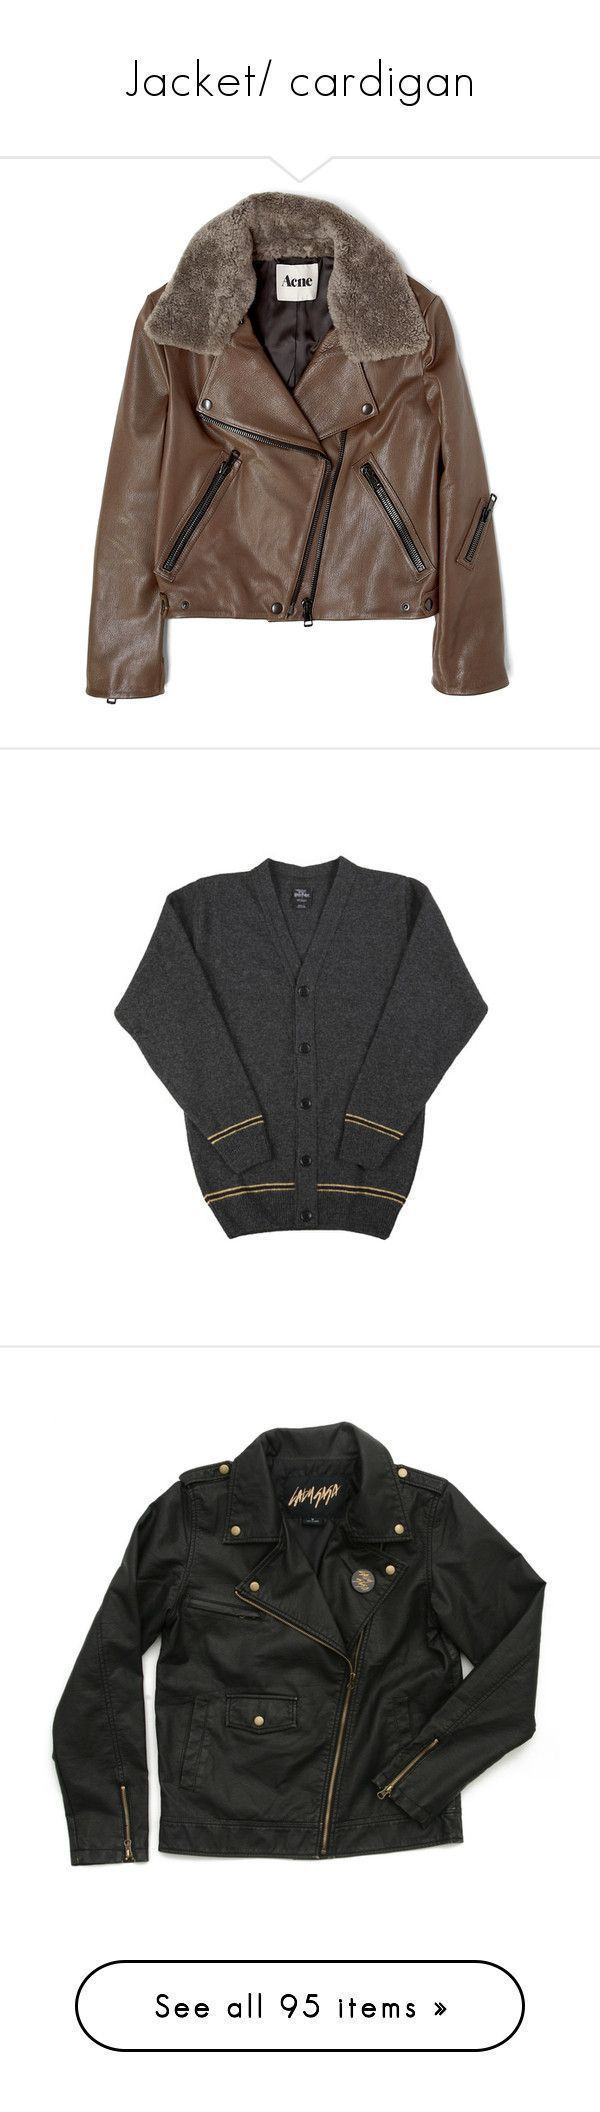 """""""Jacket/ cardigan"""" by beatrizmx3 ❤ liked on Polyvore featuring outerwear, jackets, coats, leather jacket, brown jacket, real leather jackets, aviator jacket, 100 leather jacket, acne studios and tops #acneaviatorjacket,"""